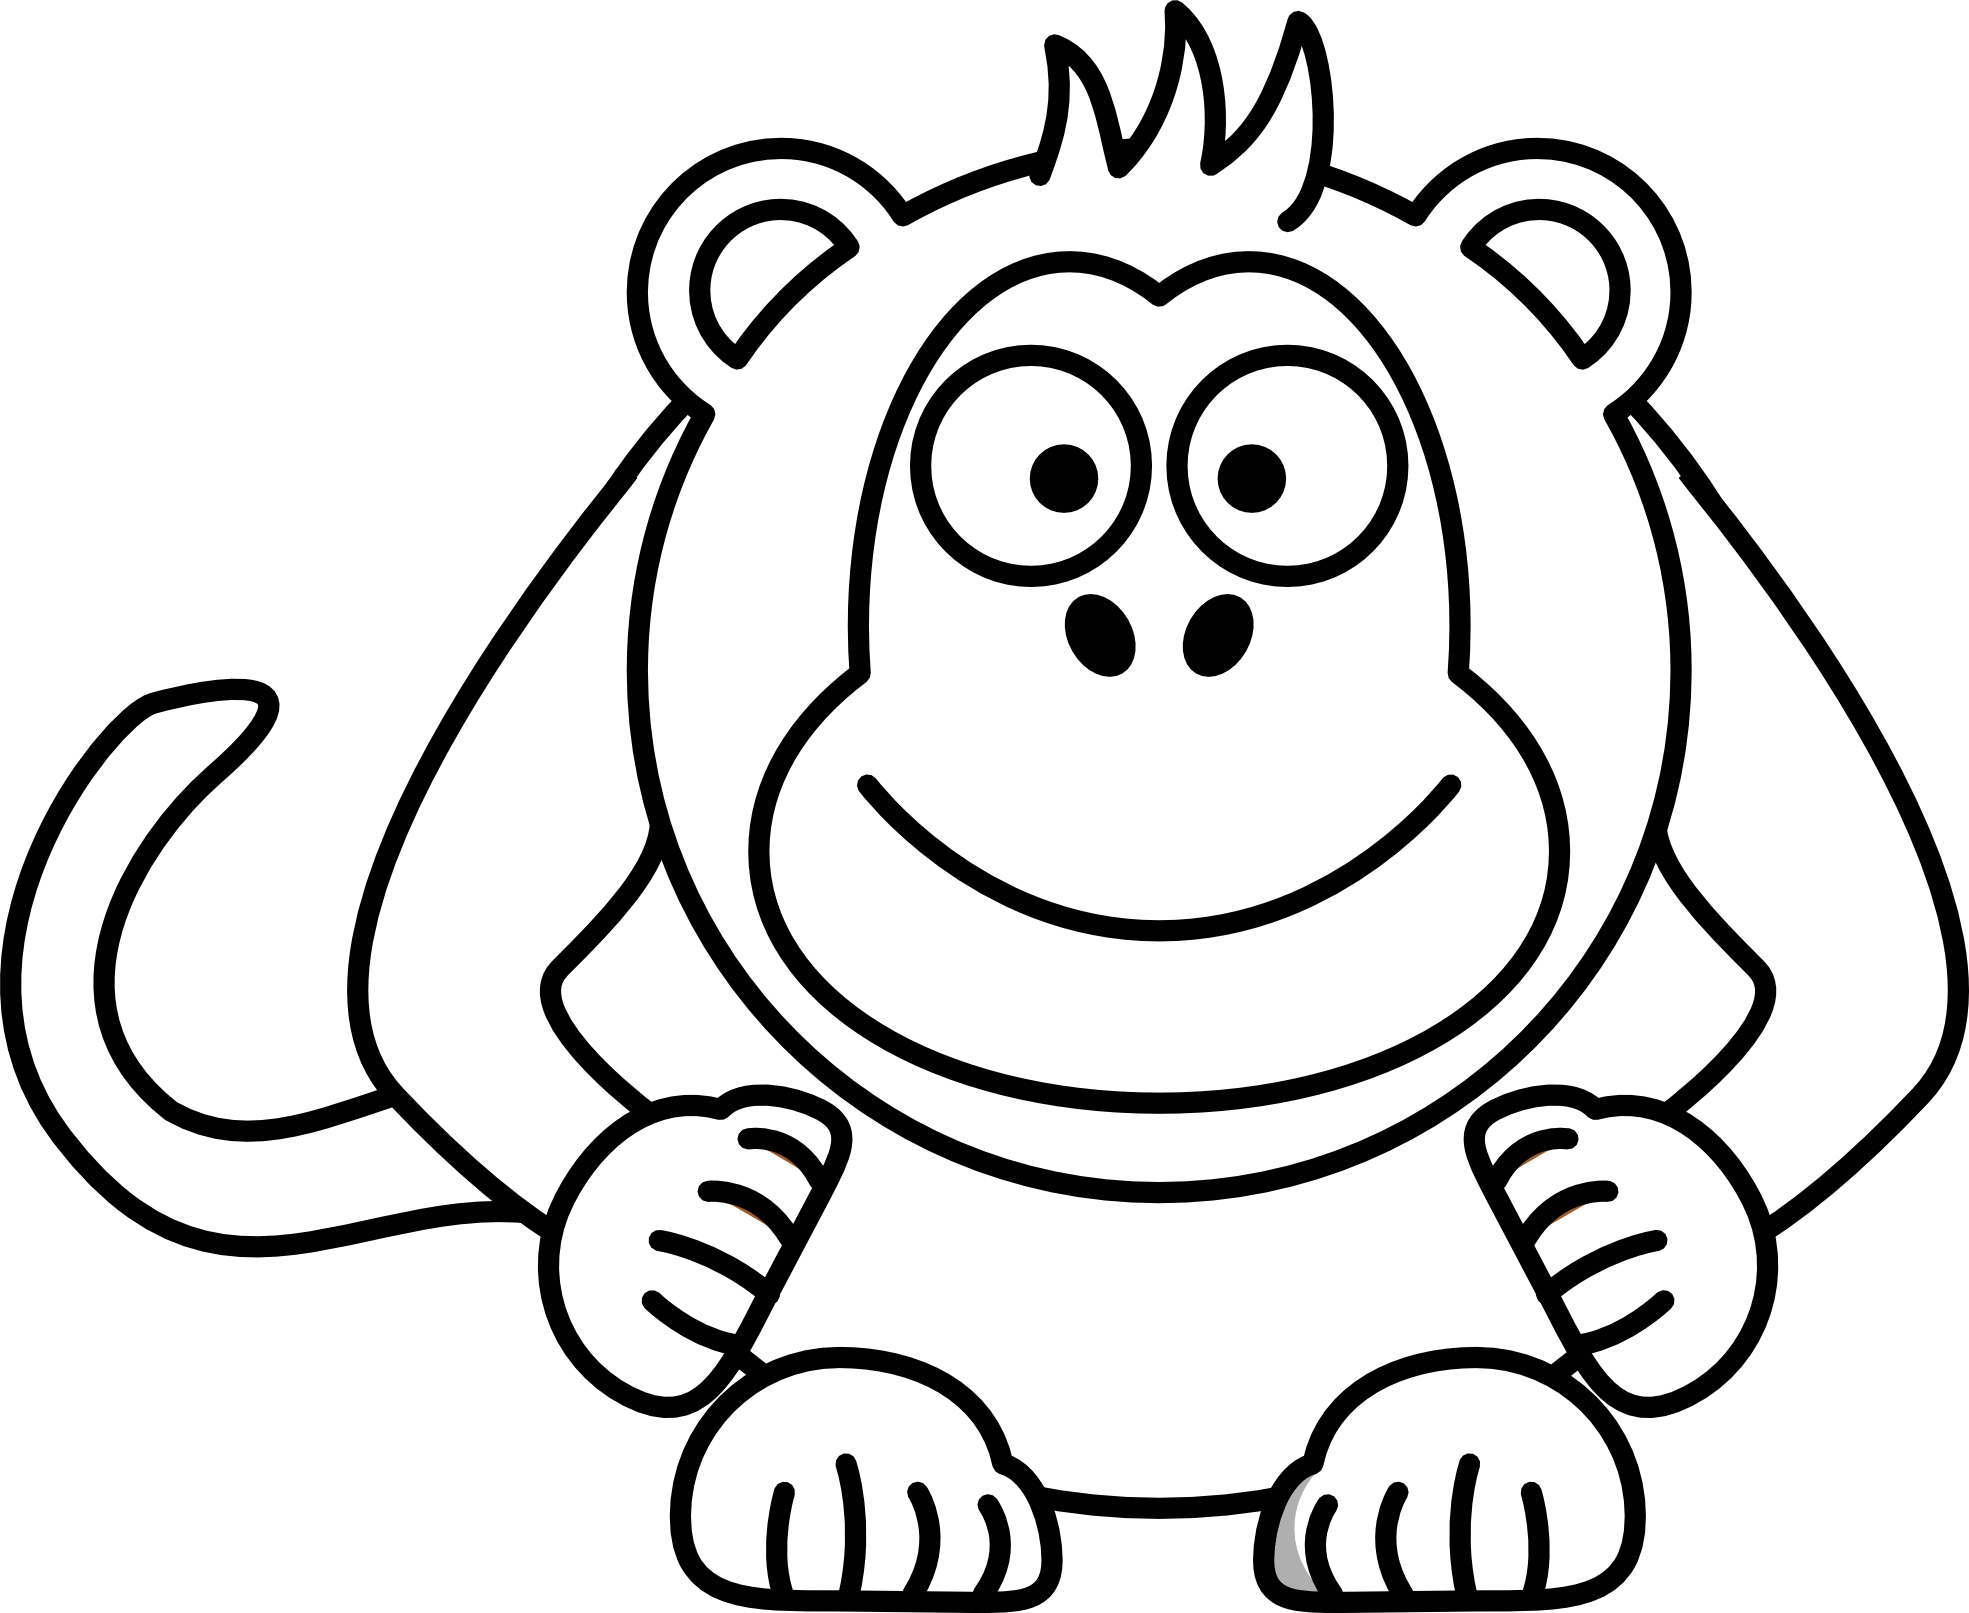 graphic royalty free stock Cute Drawing Of A Monkey at GetDrawings